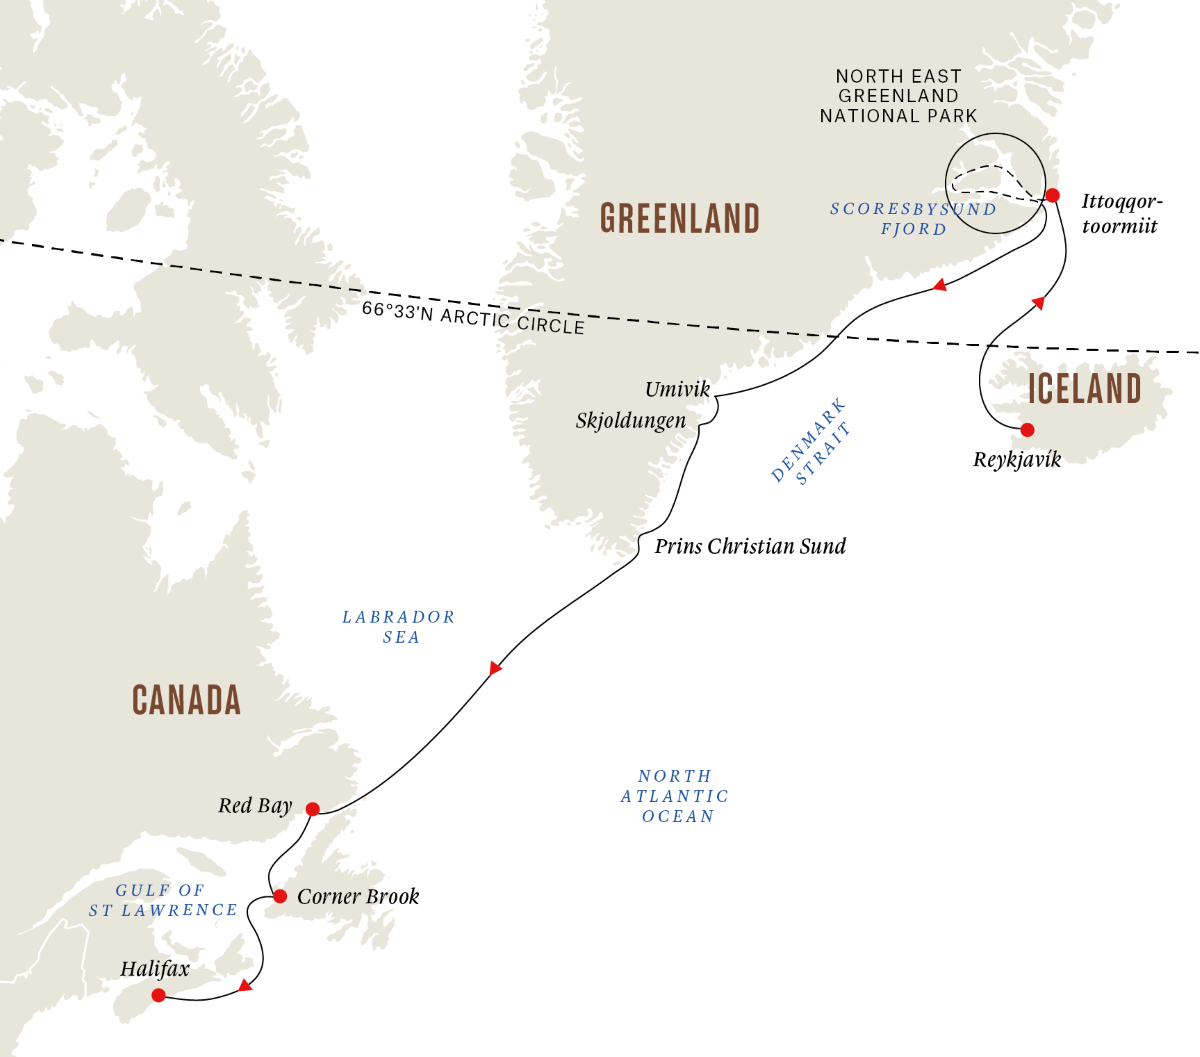 Greenland and Atlantic Canada - The Ultimate Fjord and National Park Expedition (Itinerary 2)